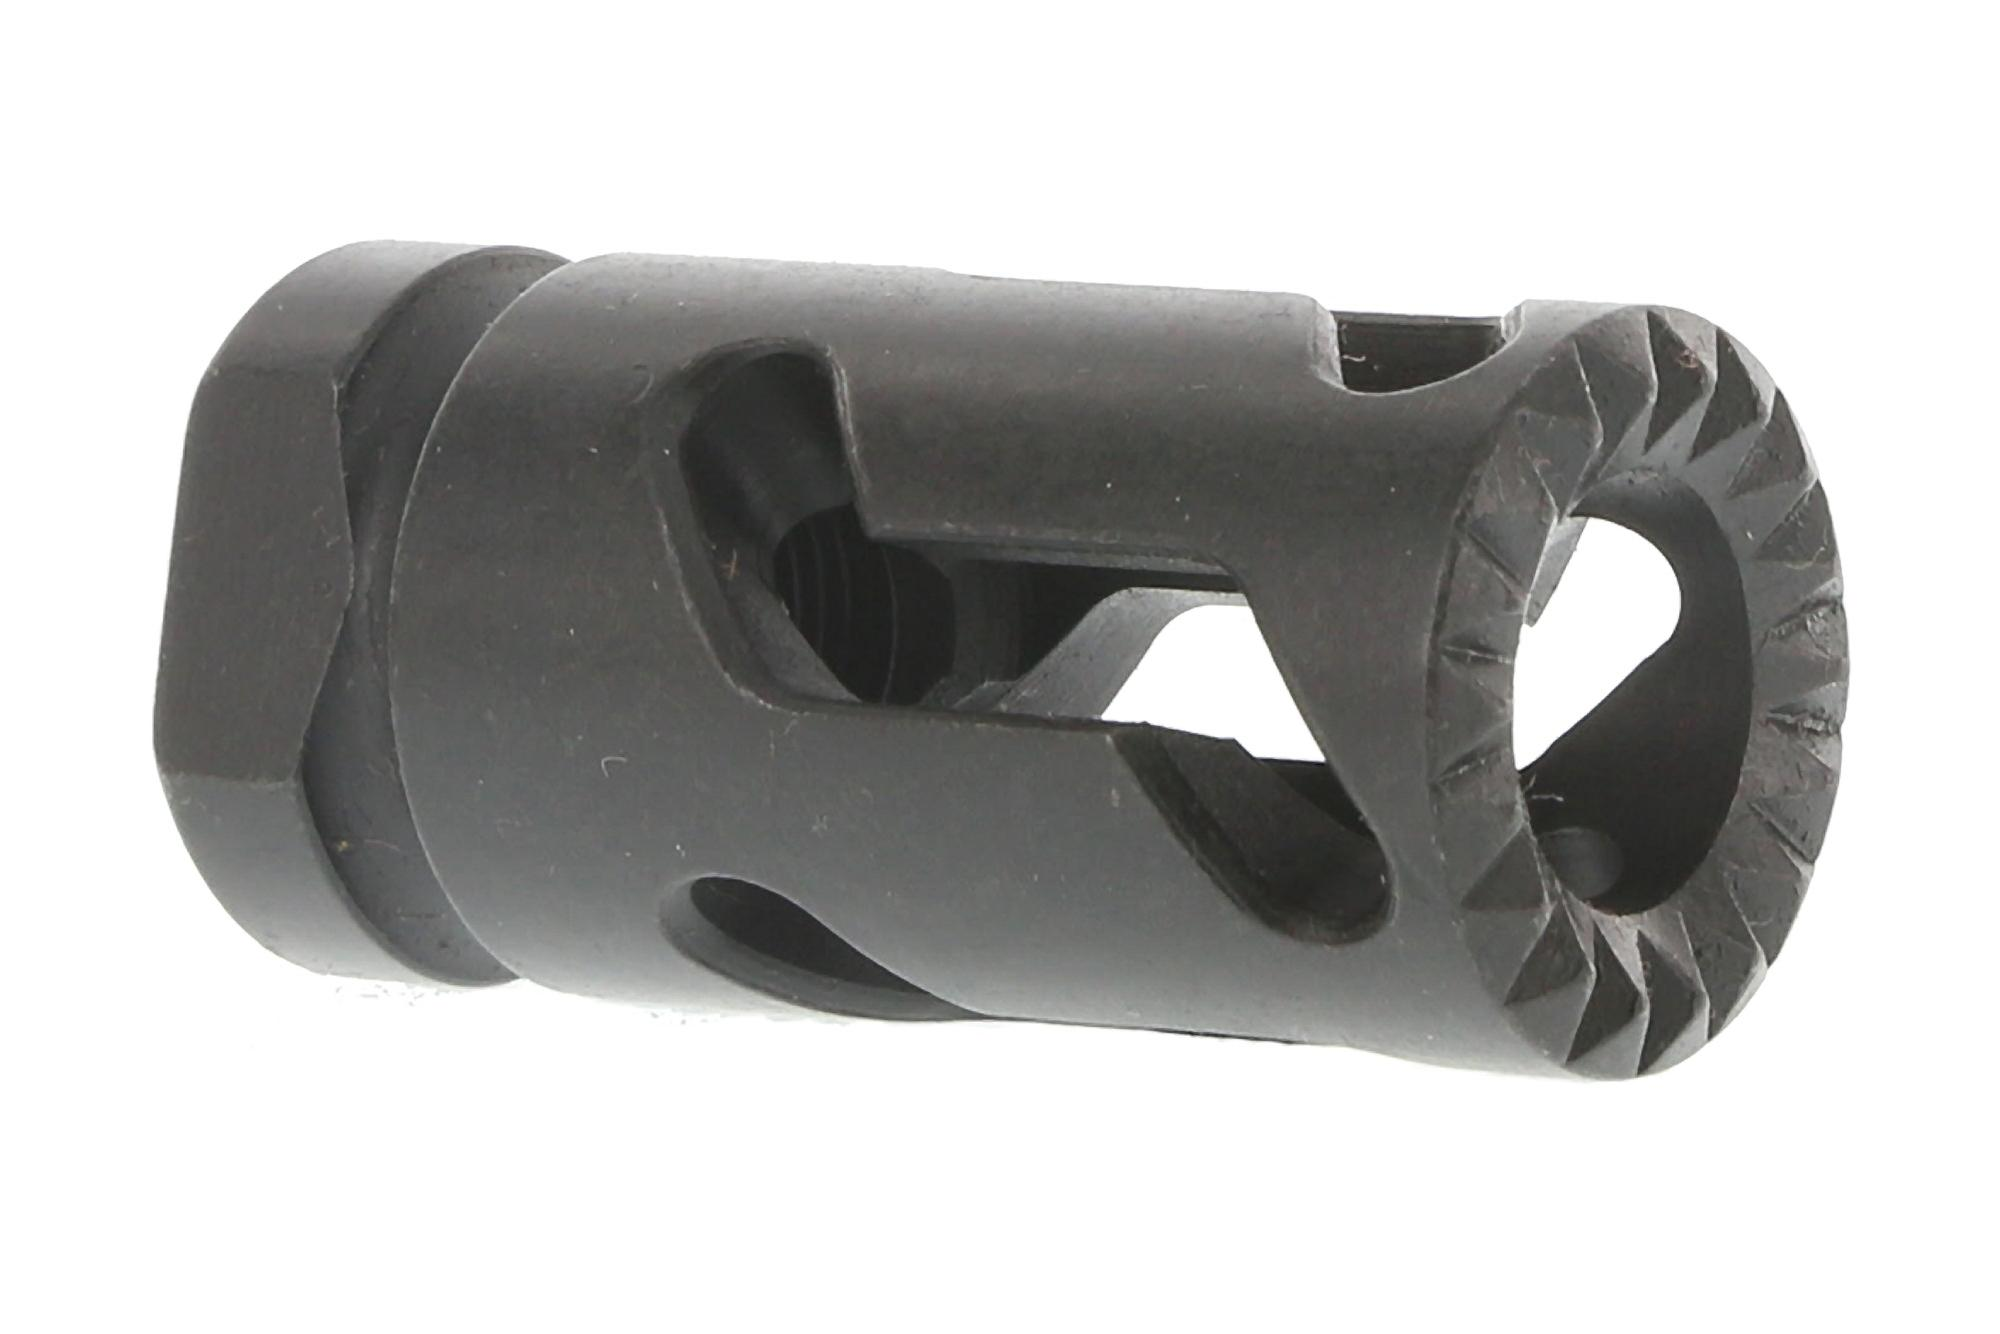 Midwest Industries AR-15 Flash Hider / Impact Device - 1/2x28